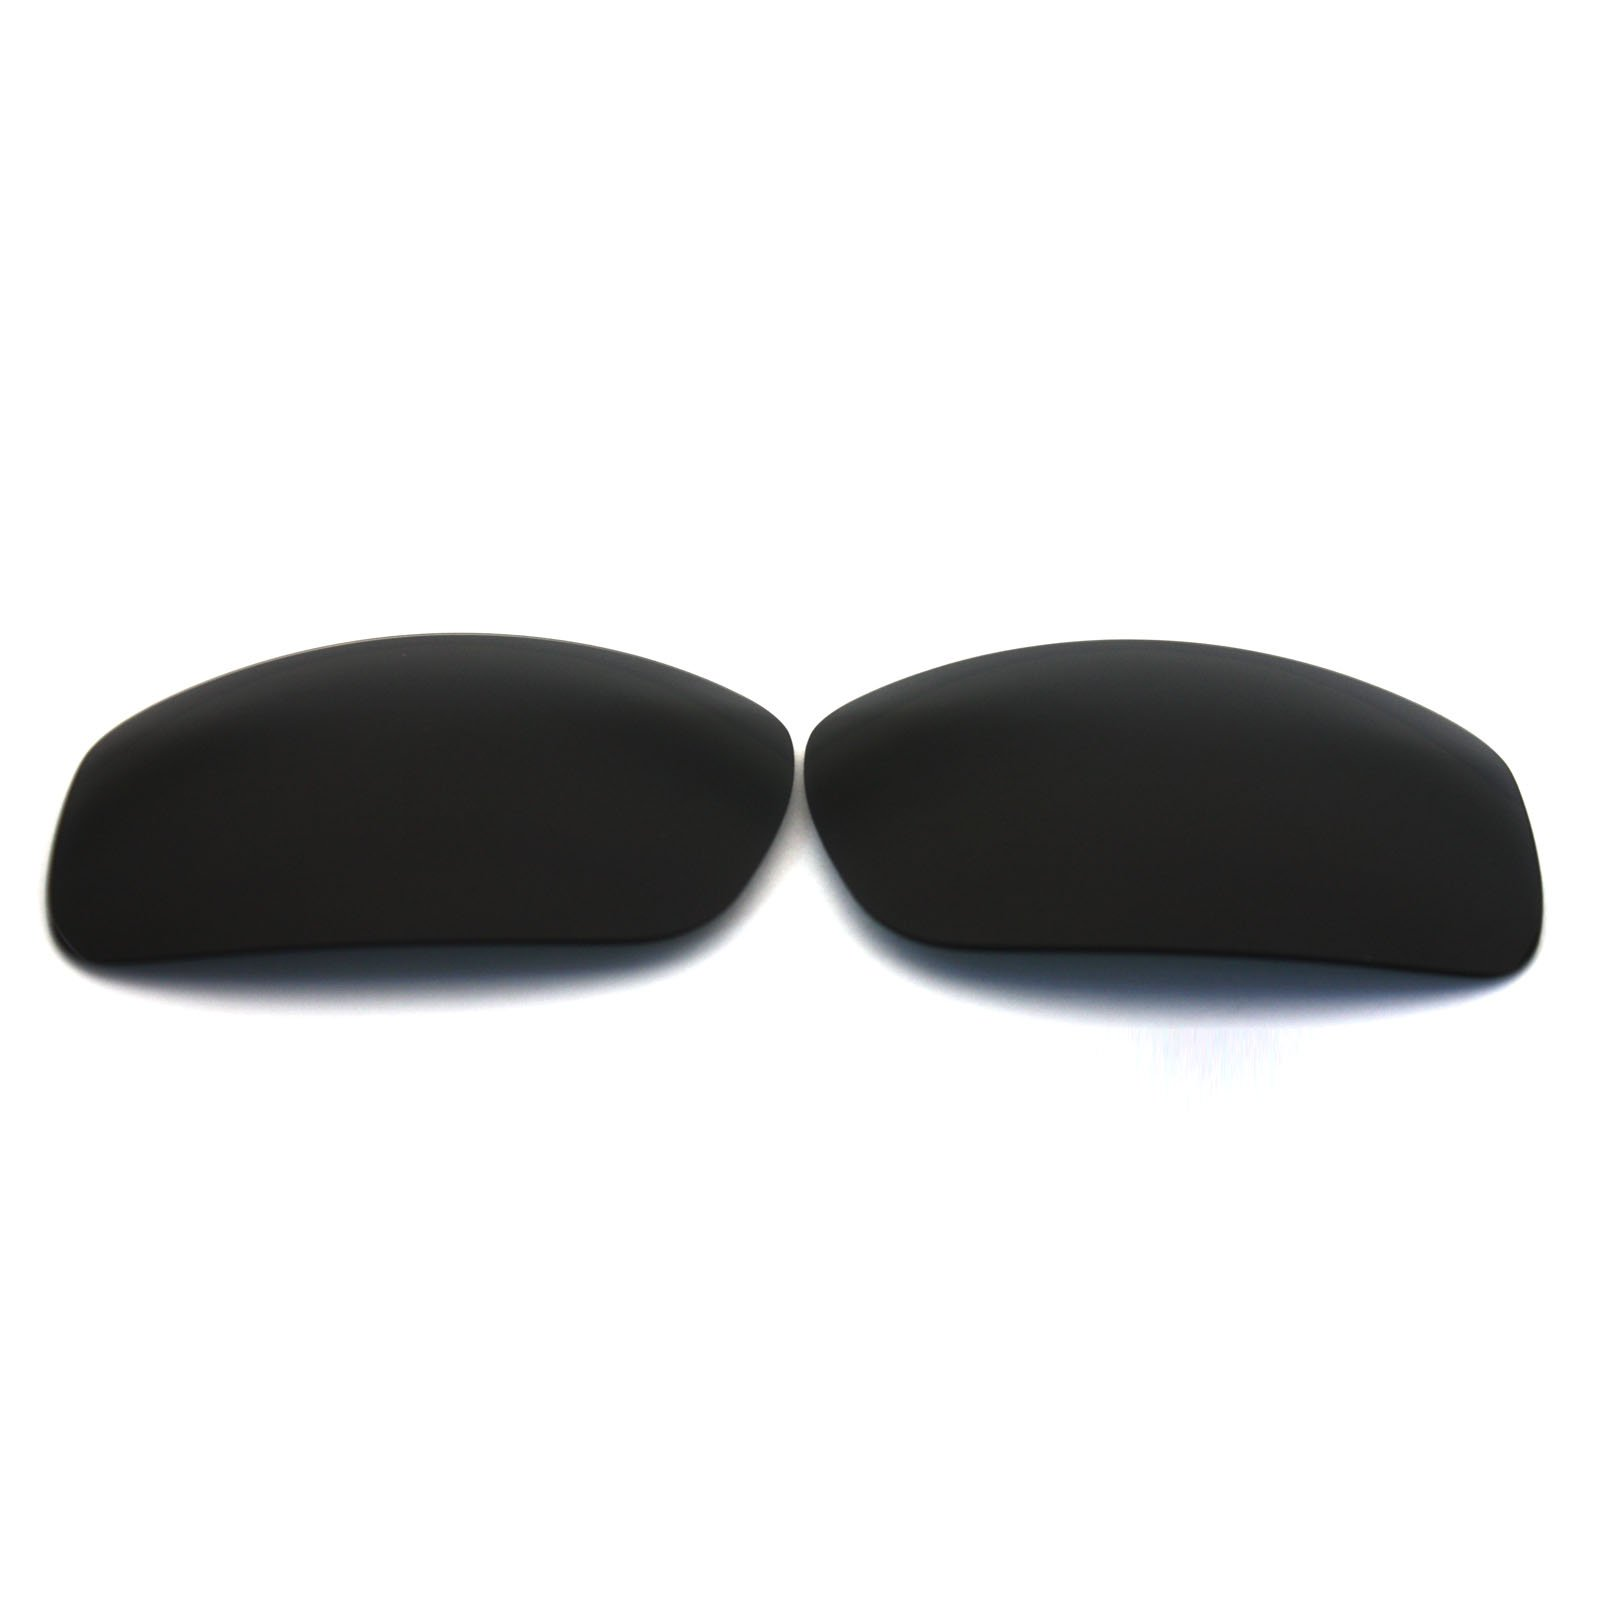 Polarized Replacement Lenses for Spy Optic Dirty Mo Sunglasses Black